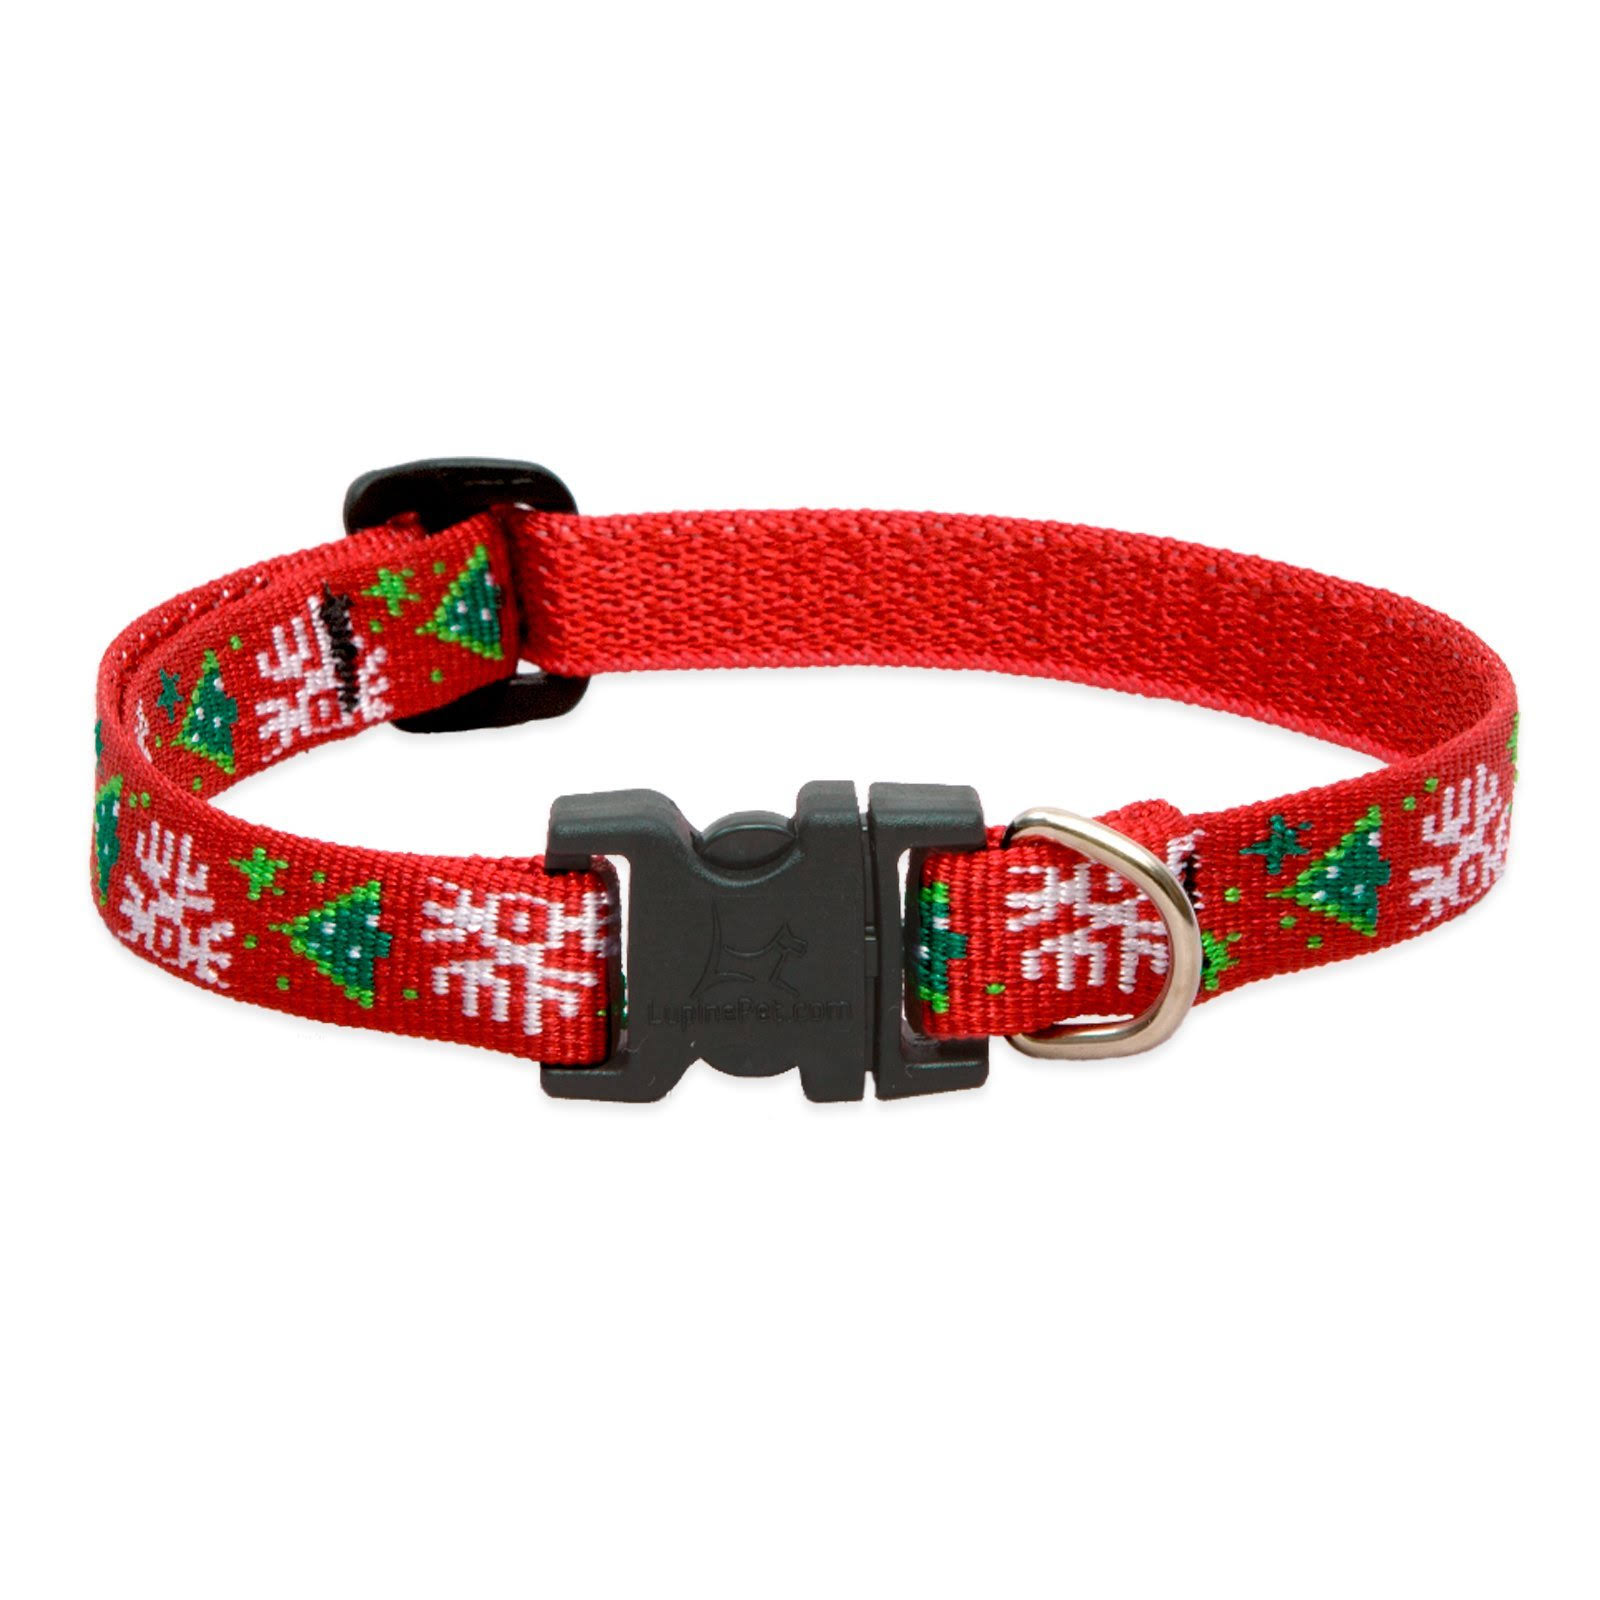 LupinePet Originals 1/2 inch Christmas Cheer Adjustable Collar for Small Dogs